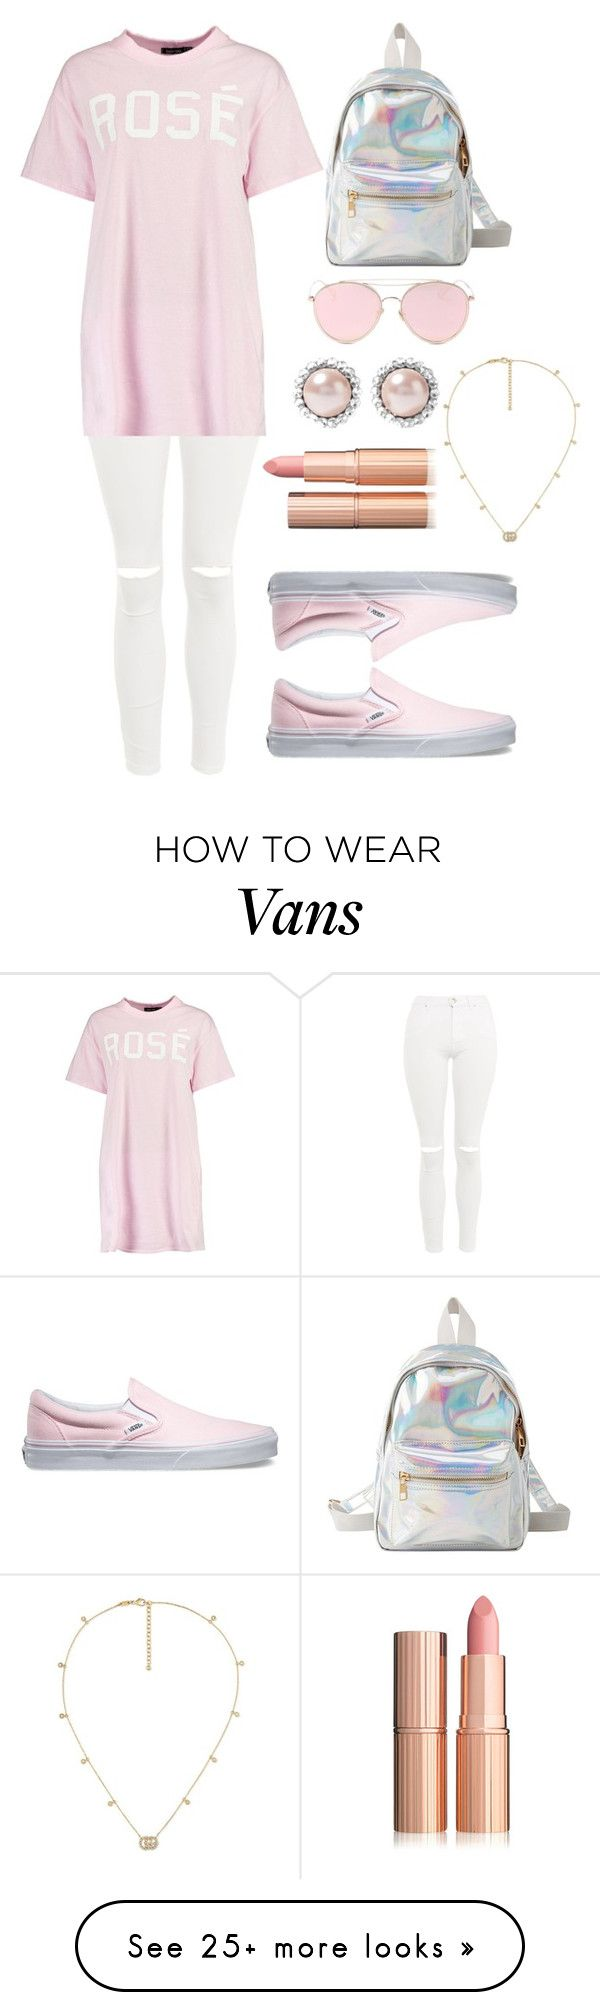 """""""Untitled #284"""" by fashionadda on Polyvore featuring Charlotte Russe, Topshop, Boohoo, Vans, LMNT, Miu Miu and Gucci"""